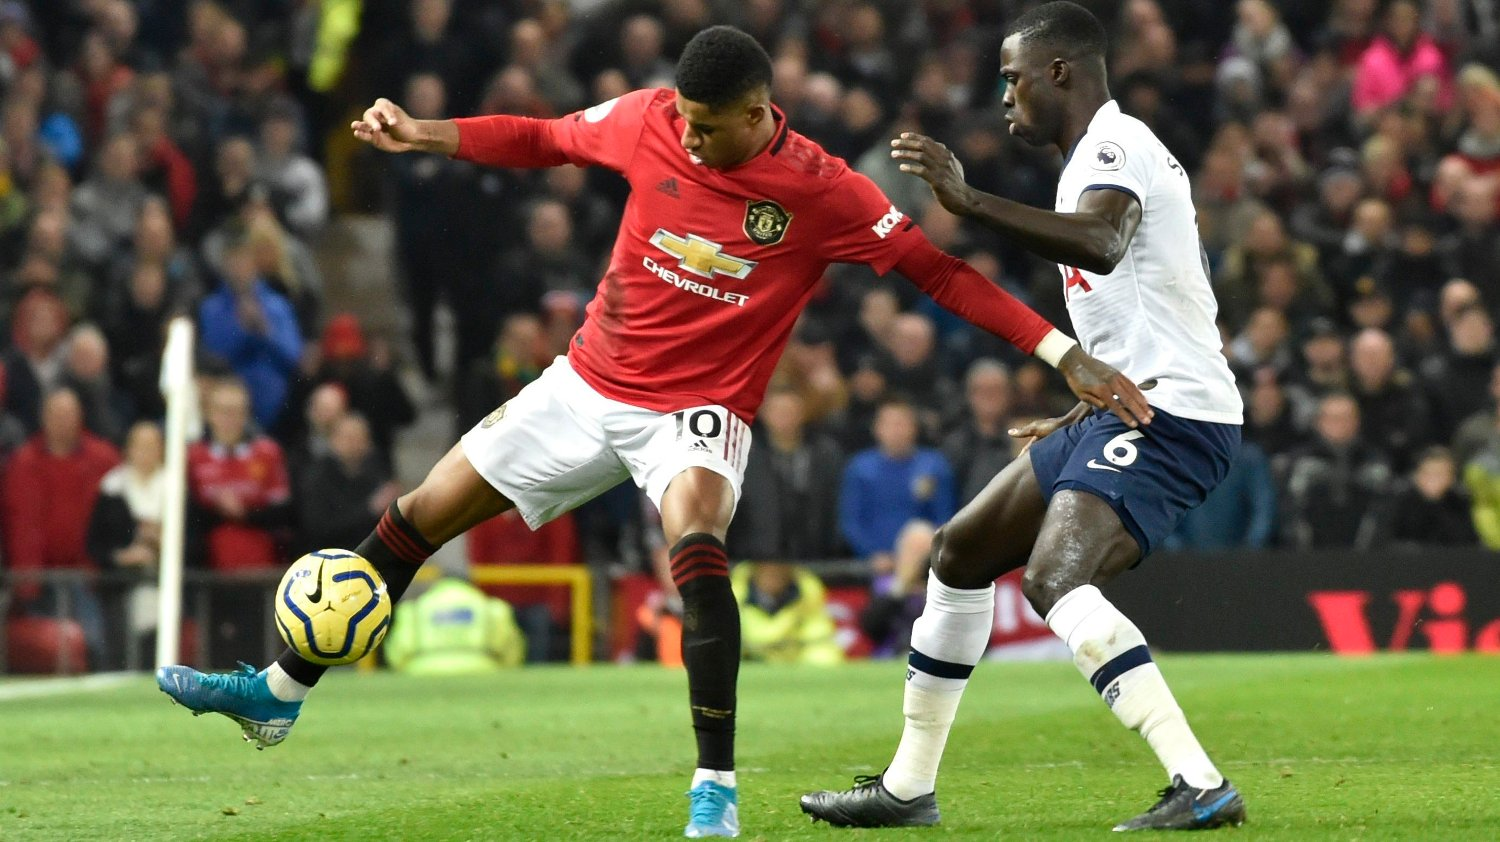 Manchester United's Marcus Rashford, left, and Tottenham's Davinson Sanchez challenge for the ball during the English Premier League soccer match between Manchester United and Tottenham Hotspur at Old Trafford in Manchester, England, Wednesday, Dec. 4, 2019.